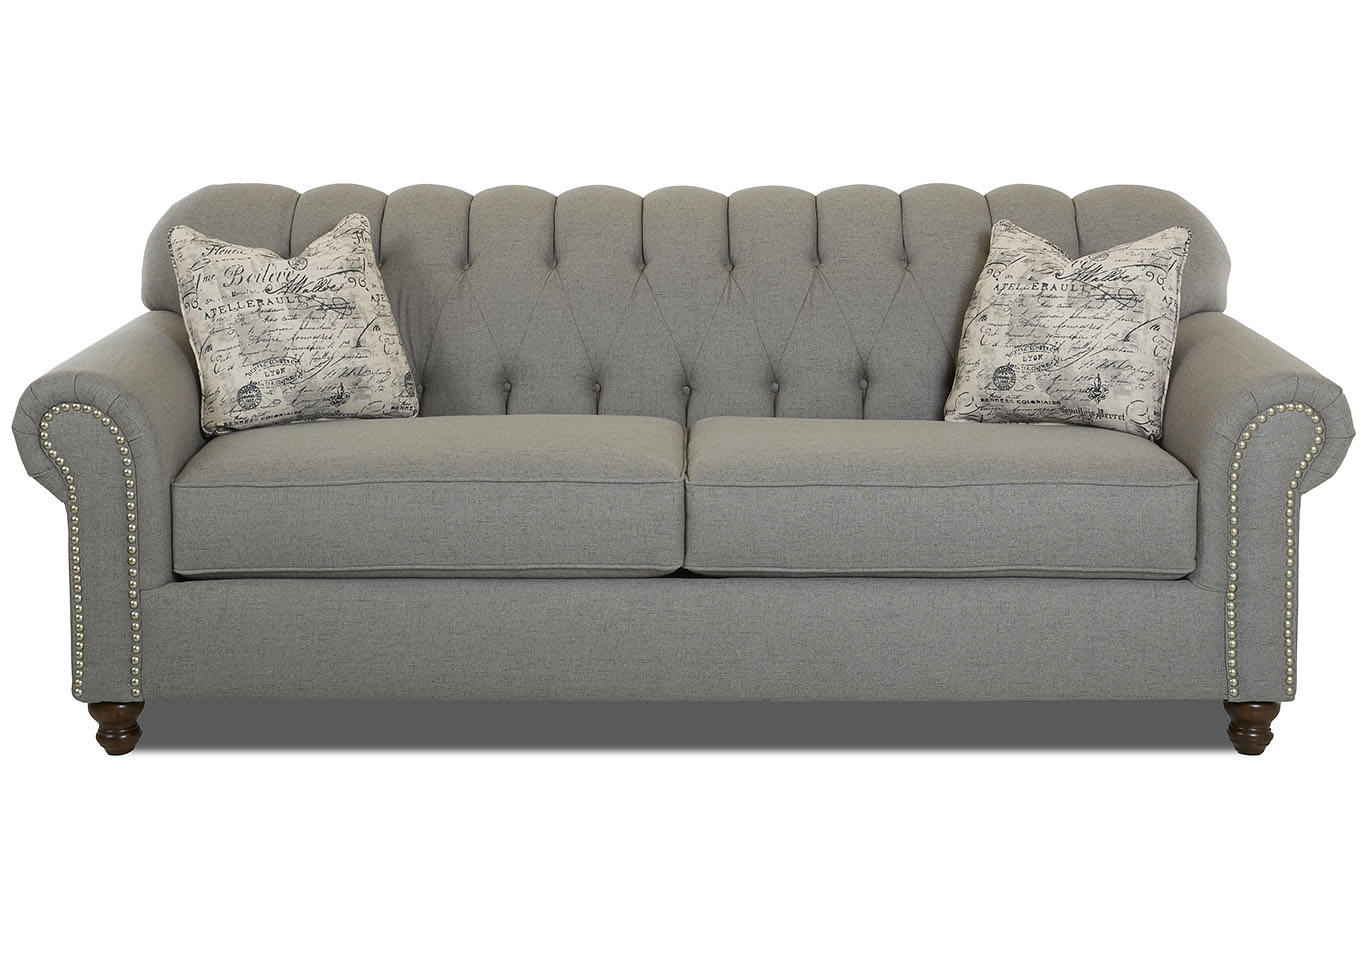 Sinclair Ash Stationary Fabric Sofa,Klaussner Home Furnishings